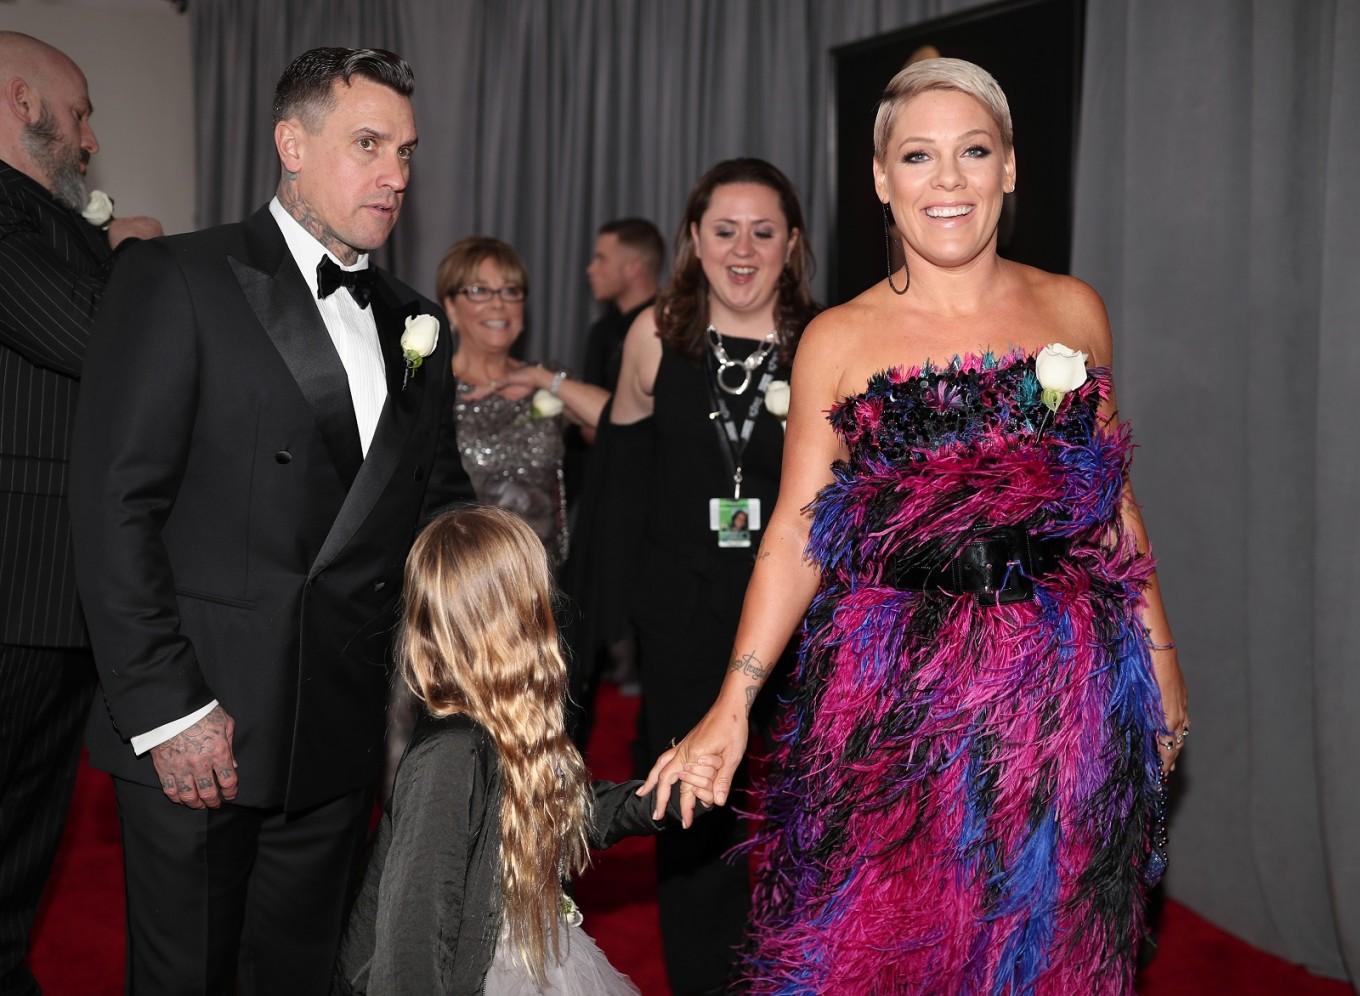 Carey Hart and recording artist Pink (R) attend the 60th Annual Grammy Awards at Madison Square Garden on January 28, 2018 in New York City.